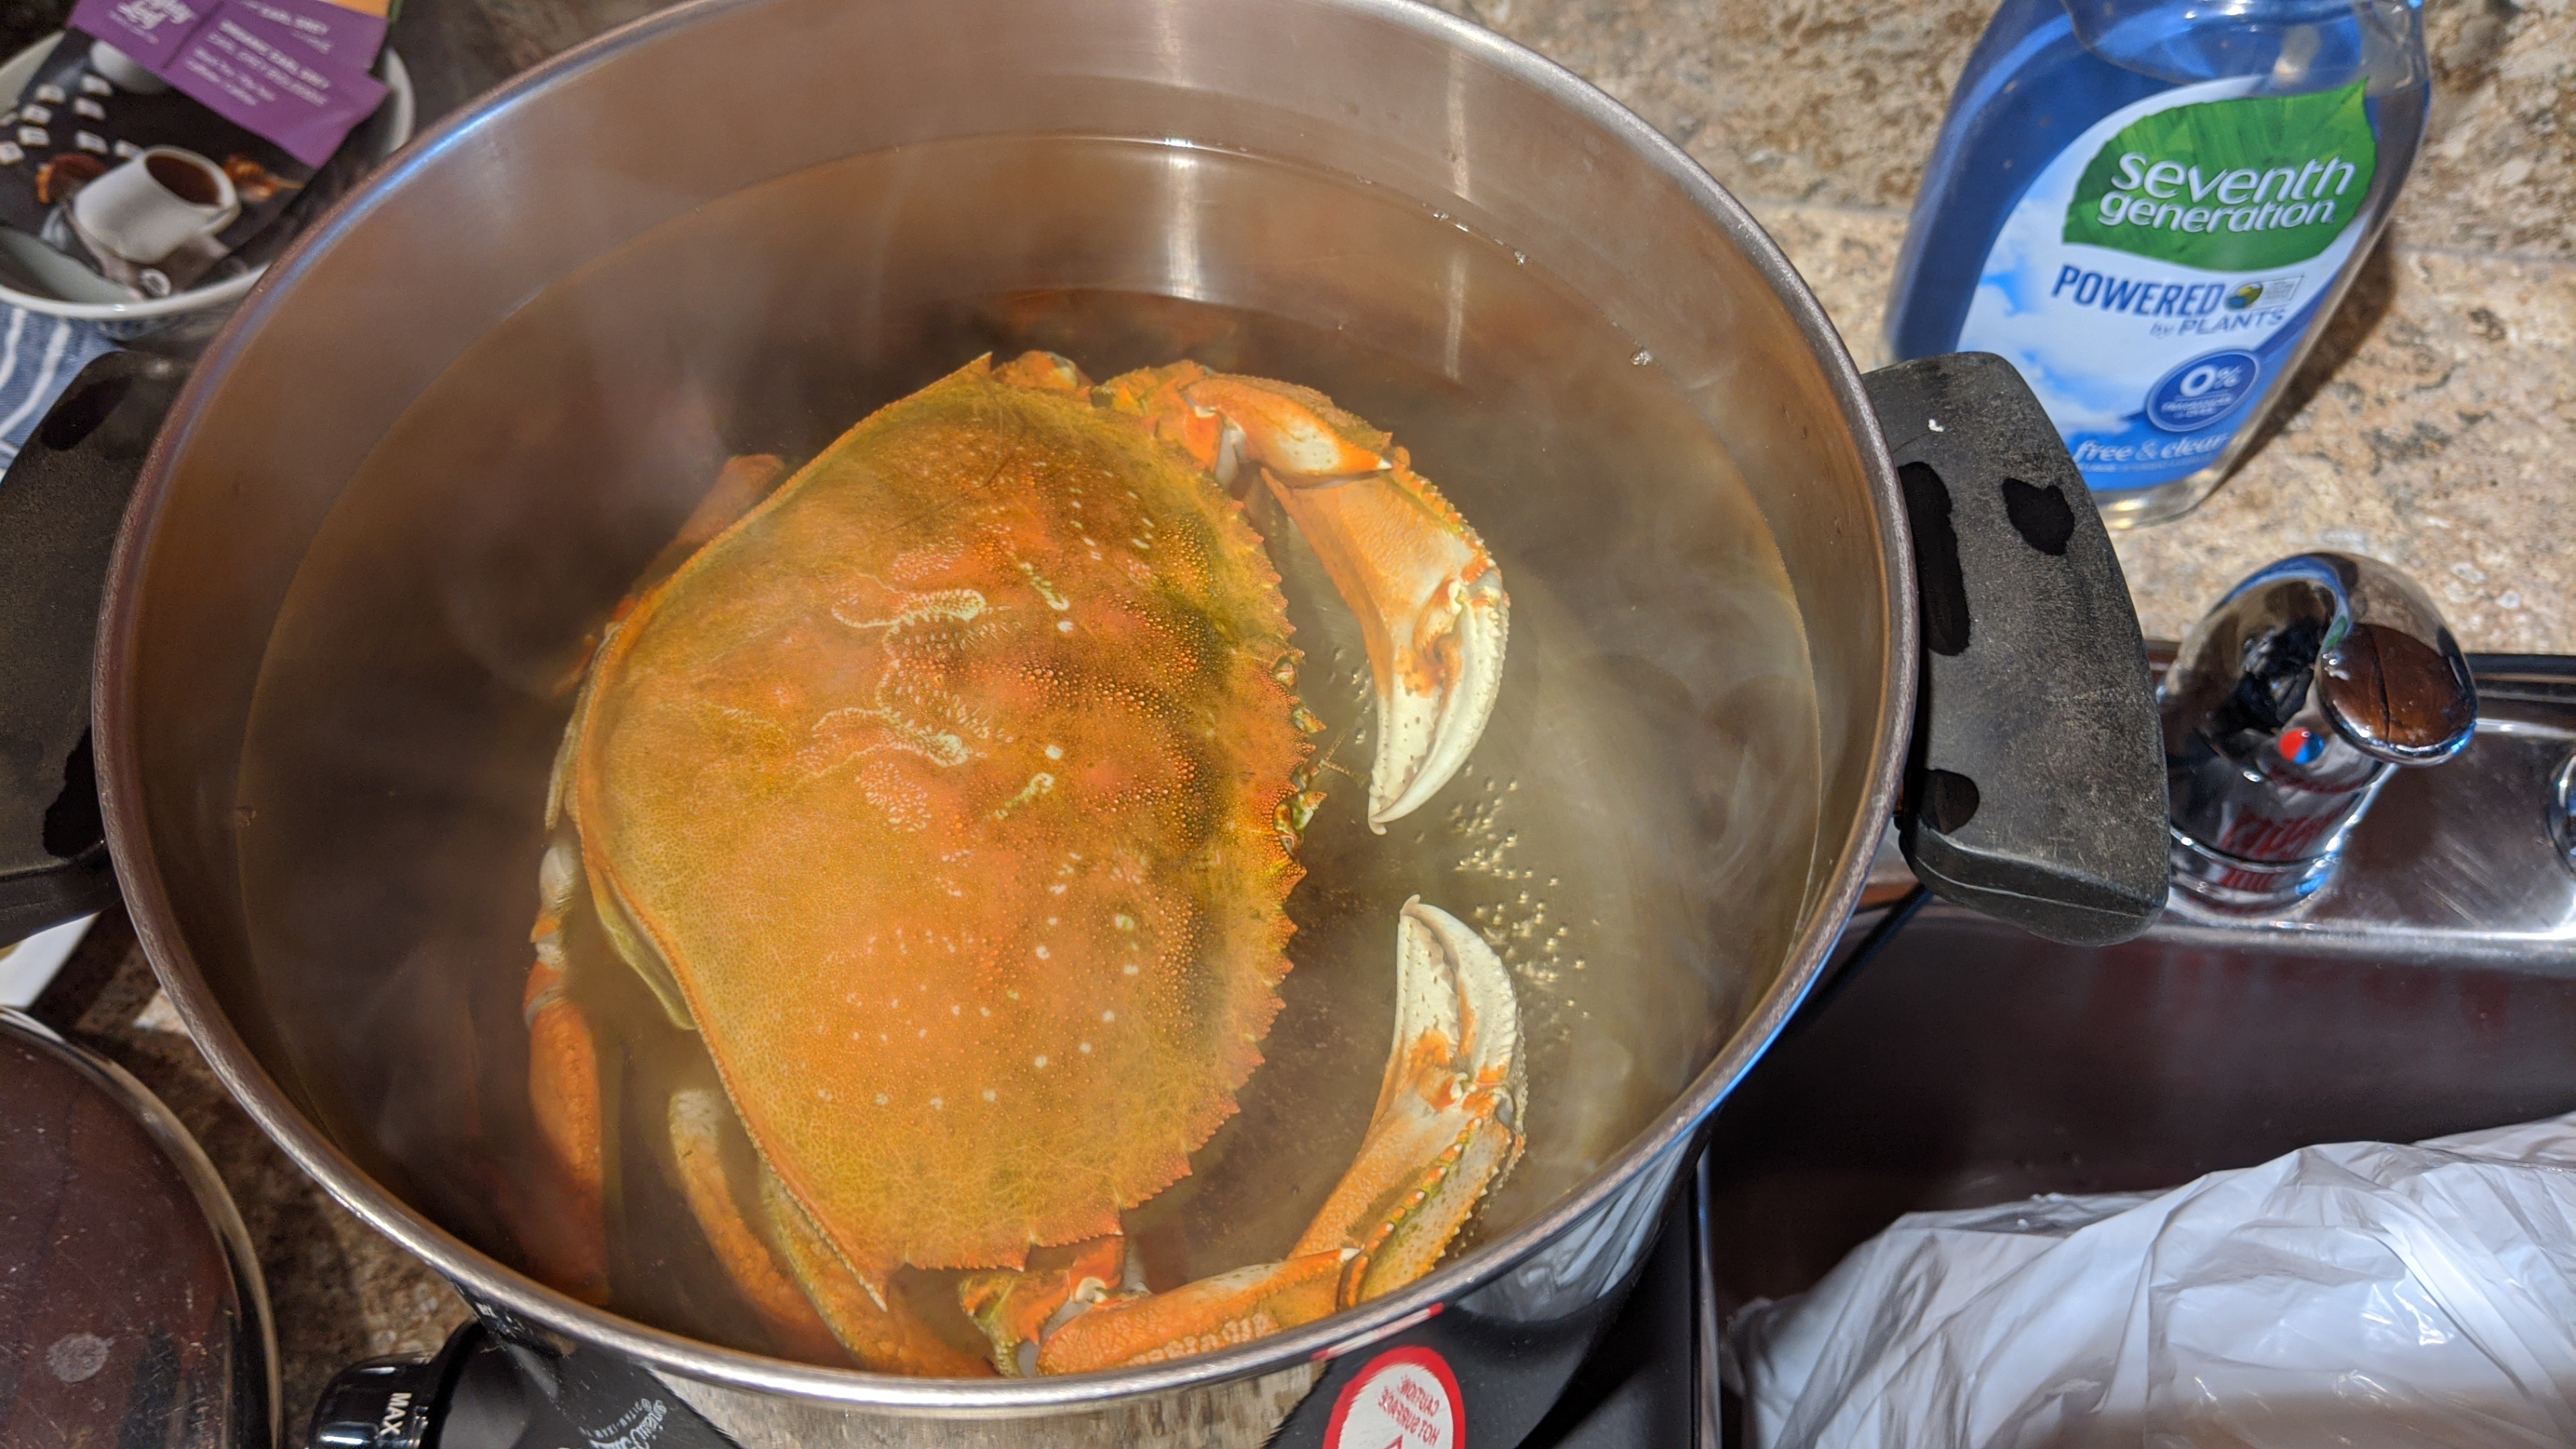 The Crab Lady: We cooked the crab at The Shoreline